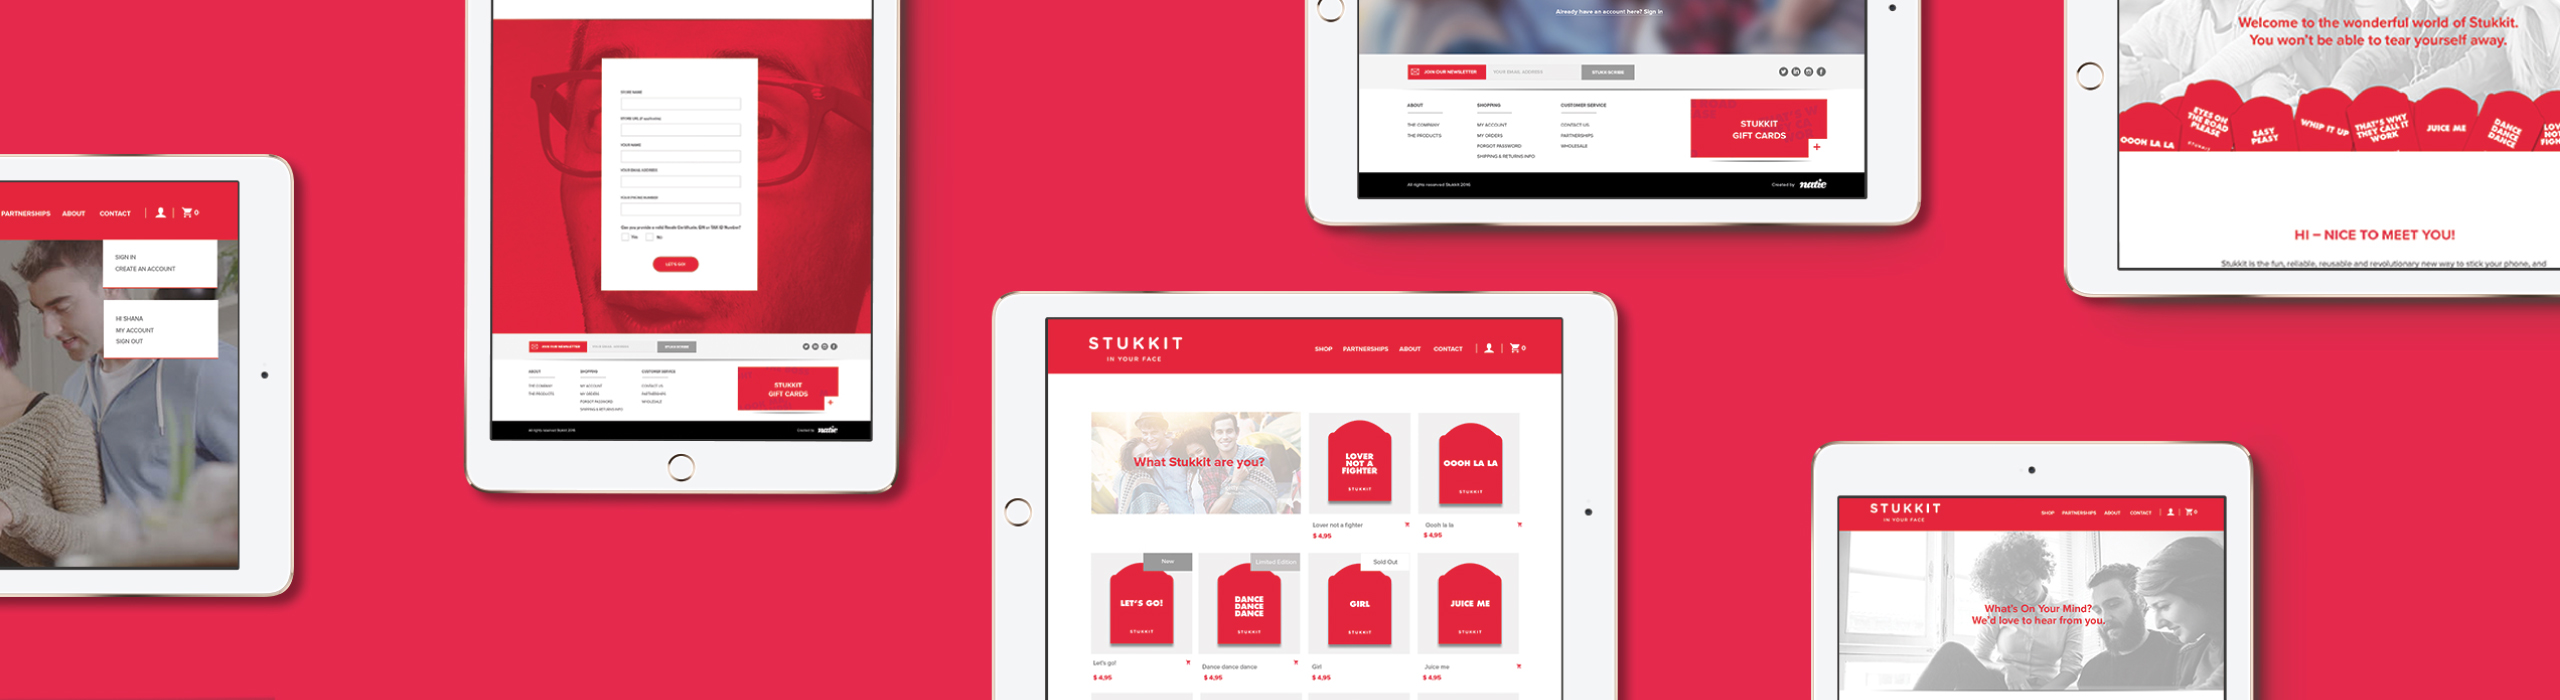 Stukkit - natie-stukkit-website-ipad - Natie Branding Agency